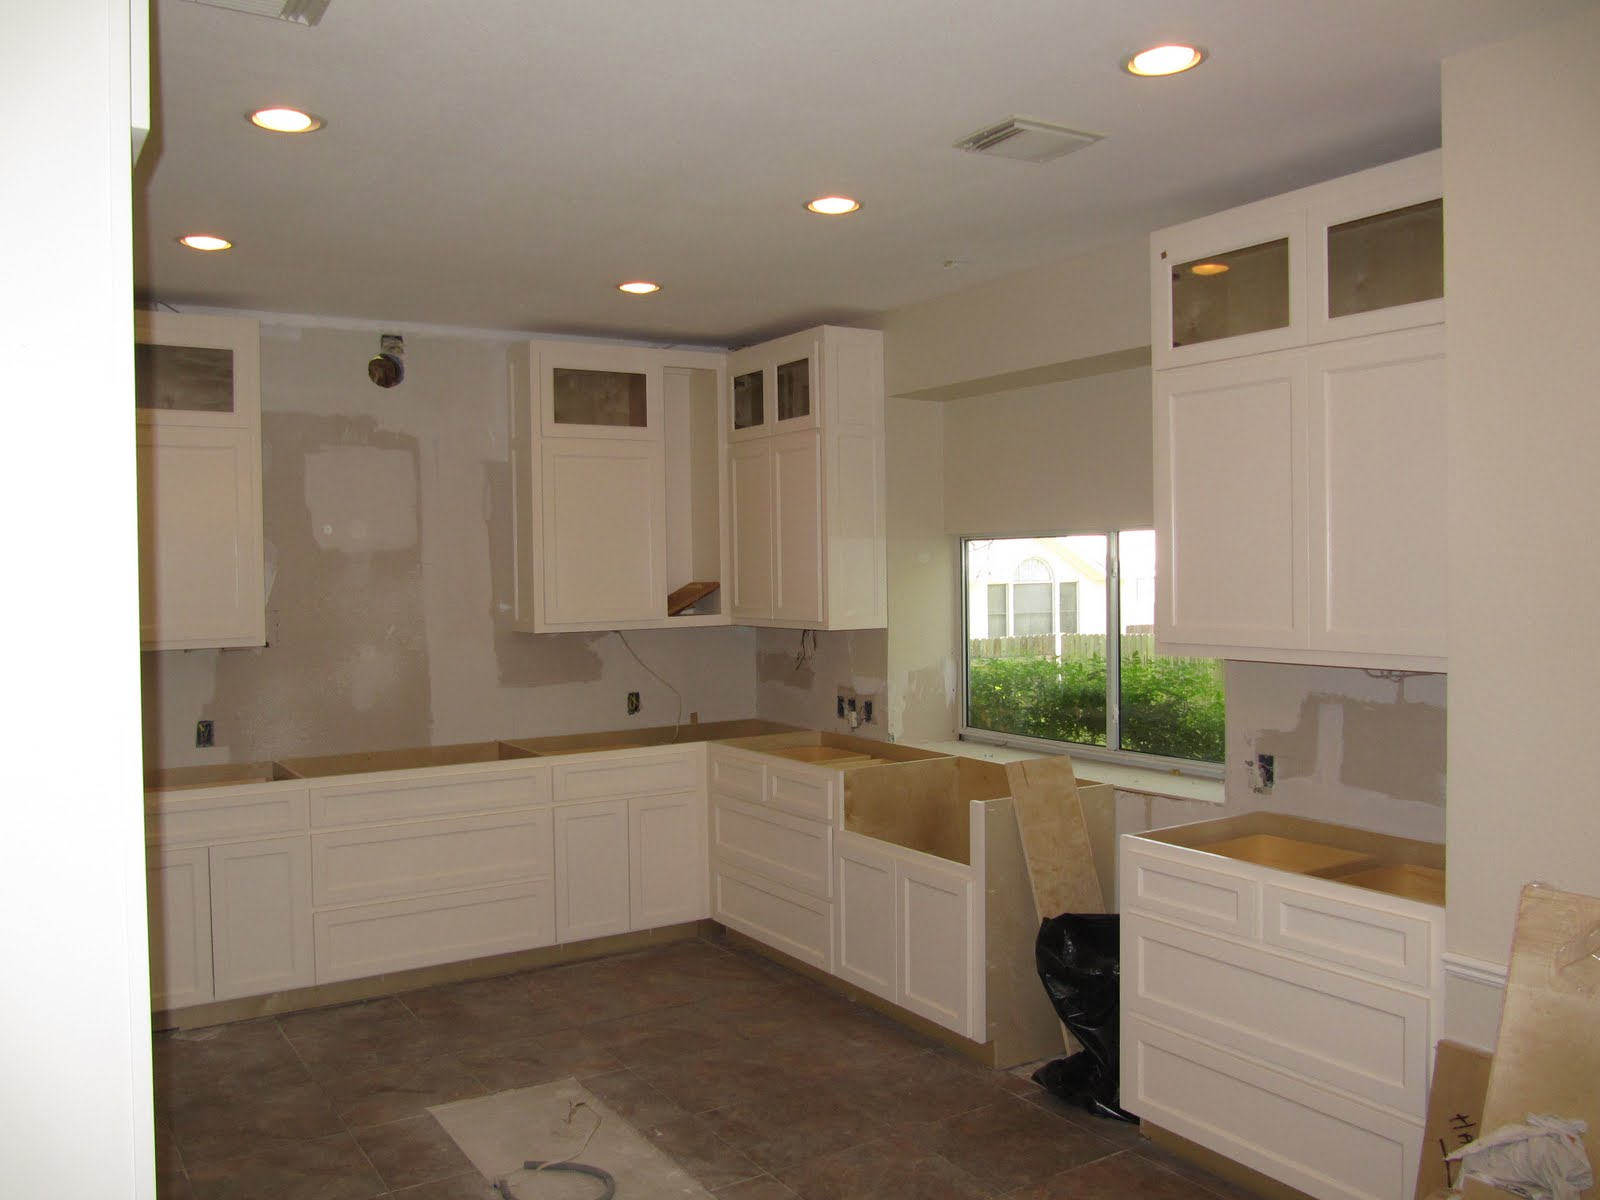 12 Ideas of 9 Ft Ceiling Kitchen Cabinets - Iky Home